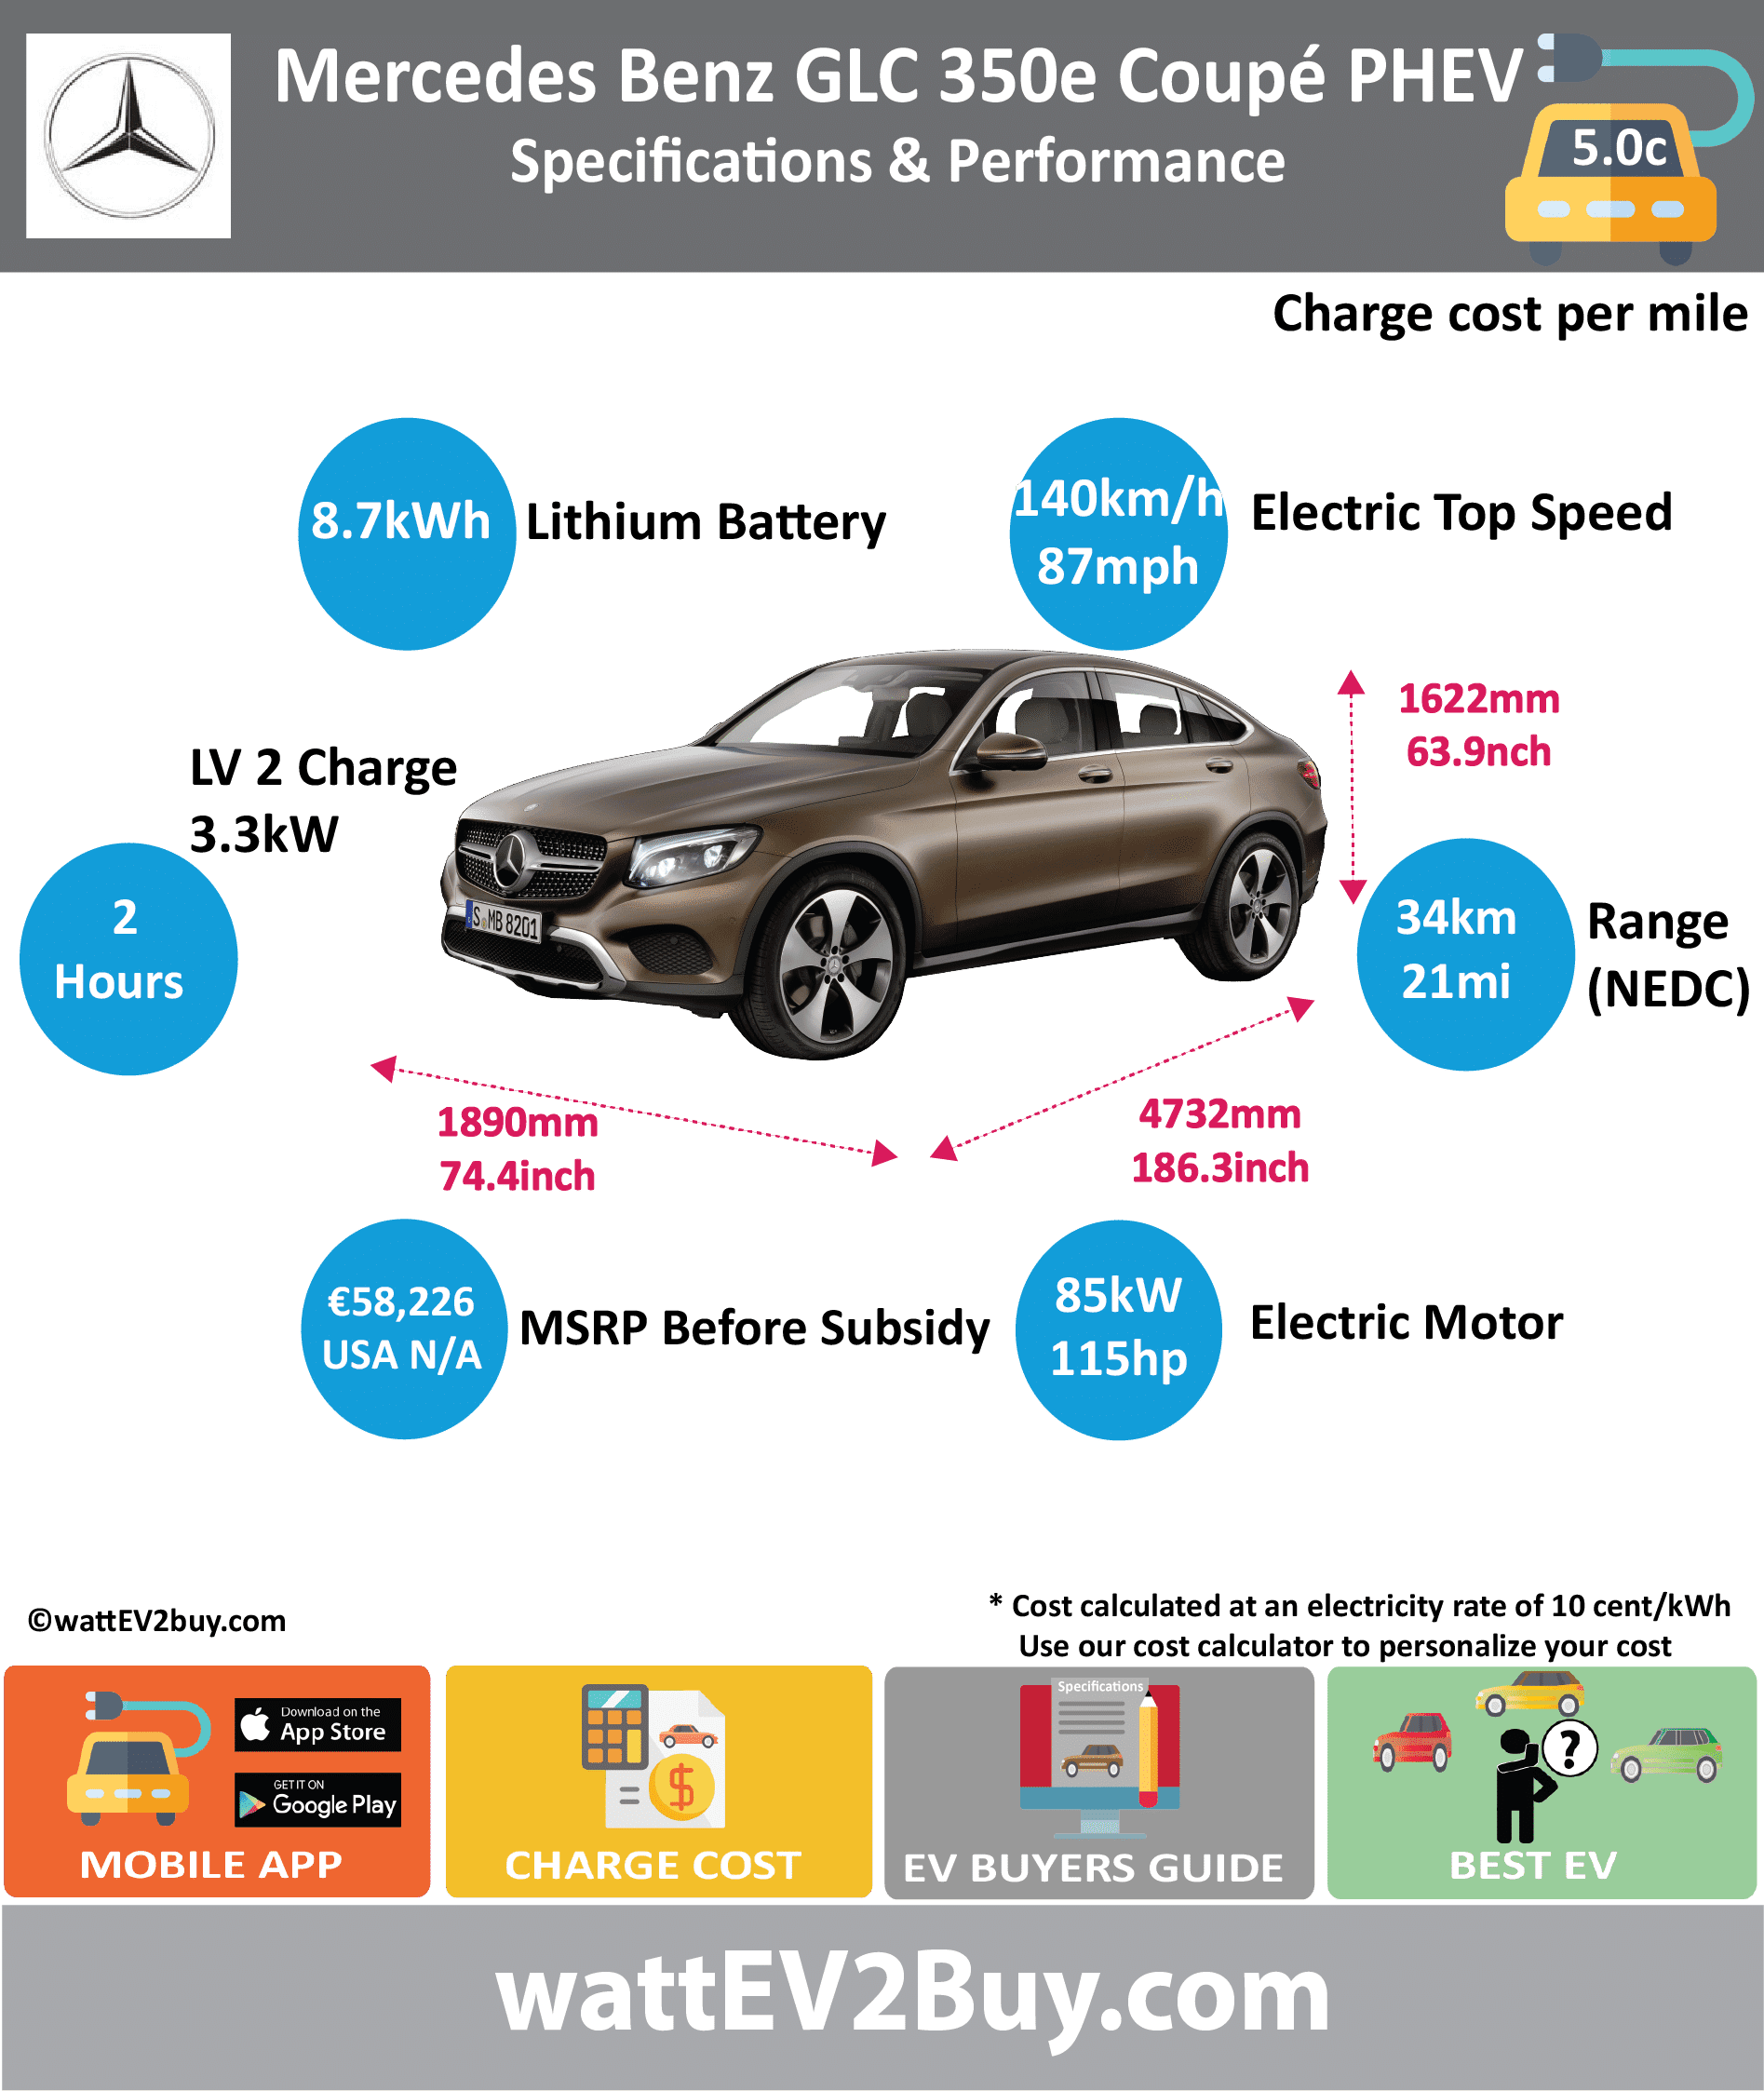 Mercedes Benz Glc350e 4matic Coupe Specs 2017 Battery Chemistry Capacity Kwh 8 7 Nominal Rating